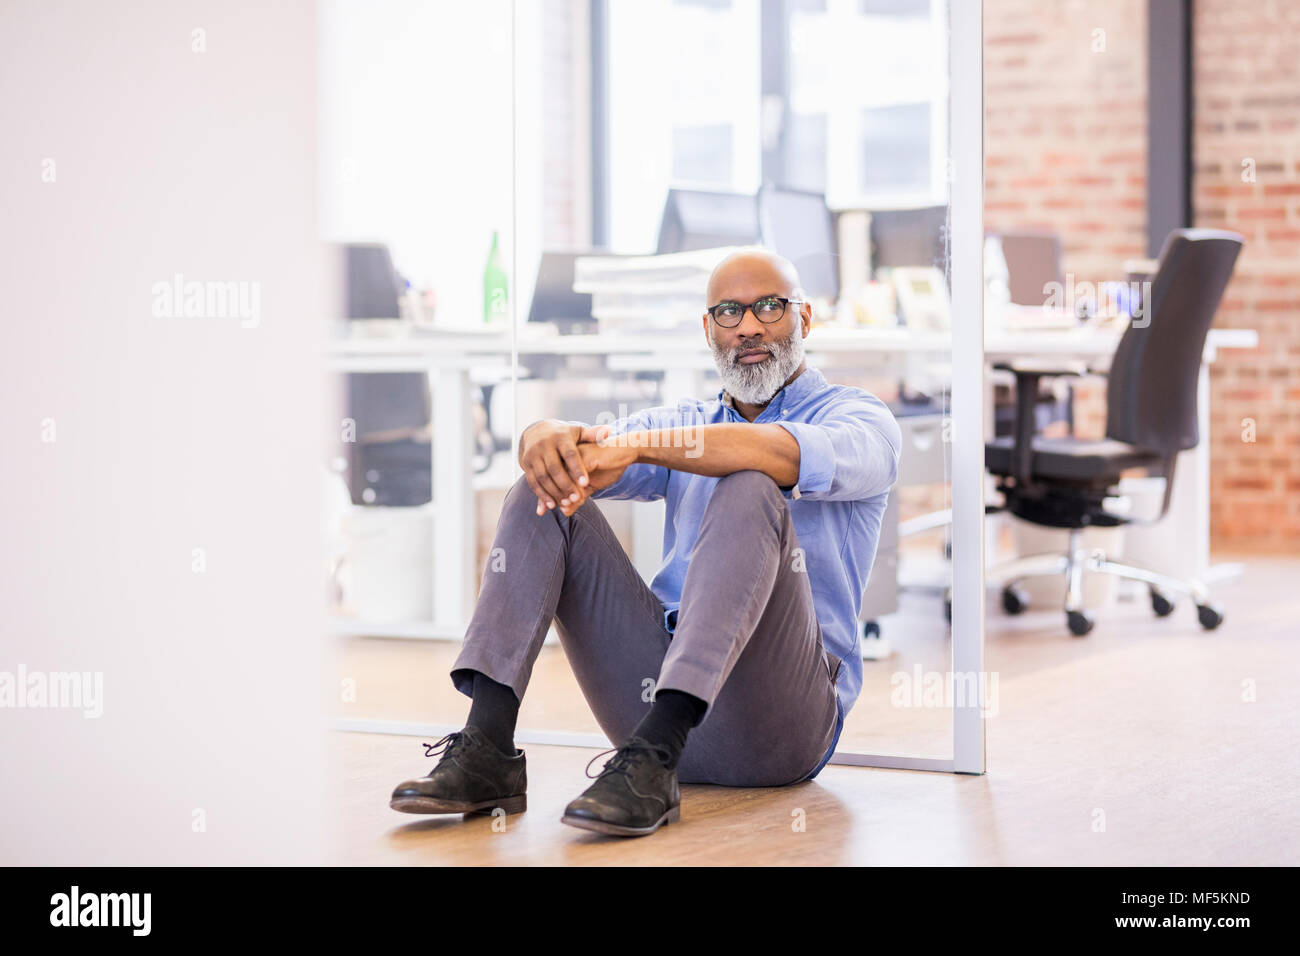 Portrait of businessman sitting on the floor of an office - Stock Image